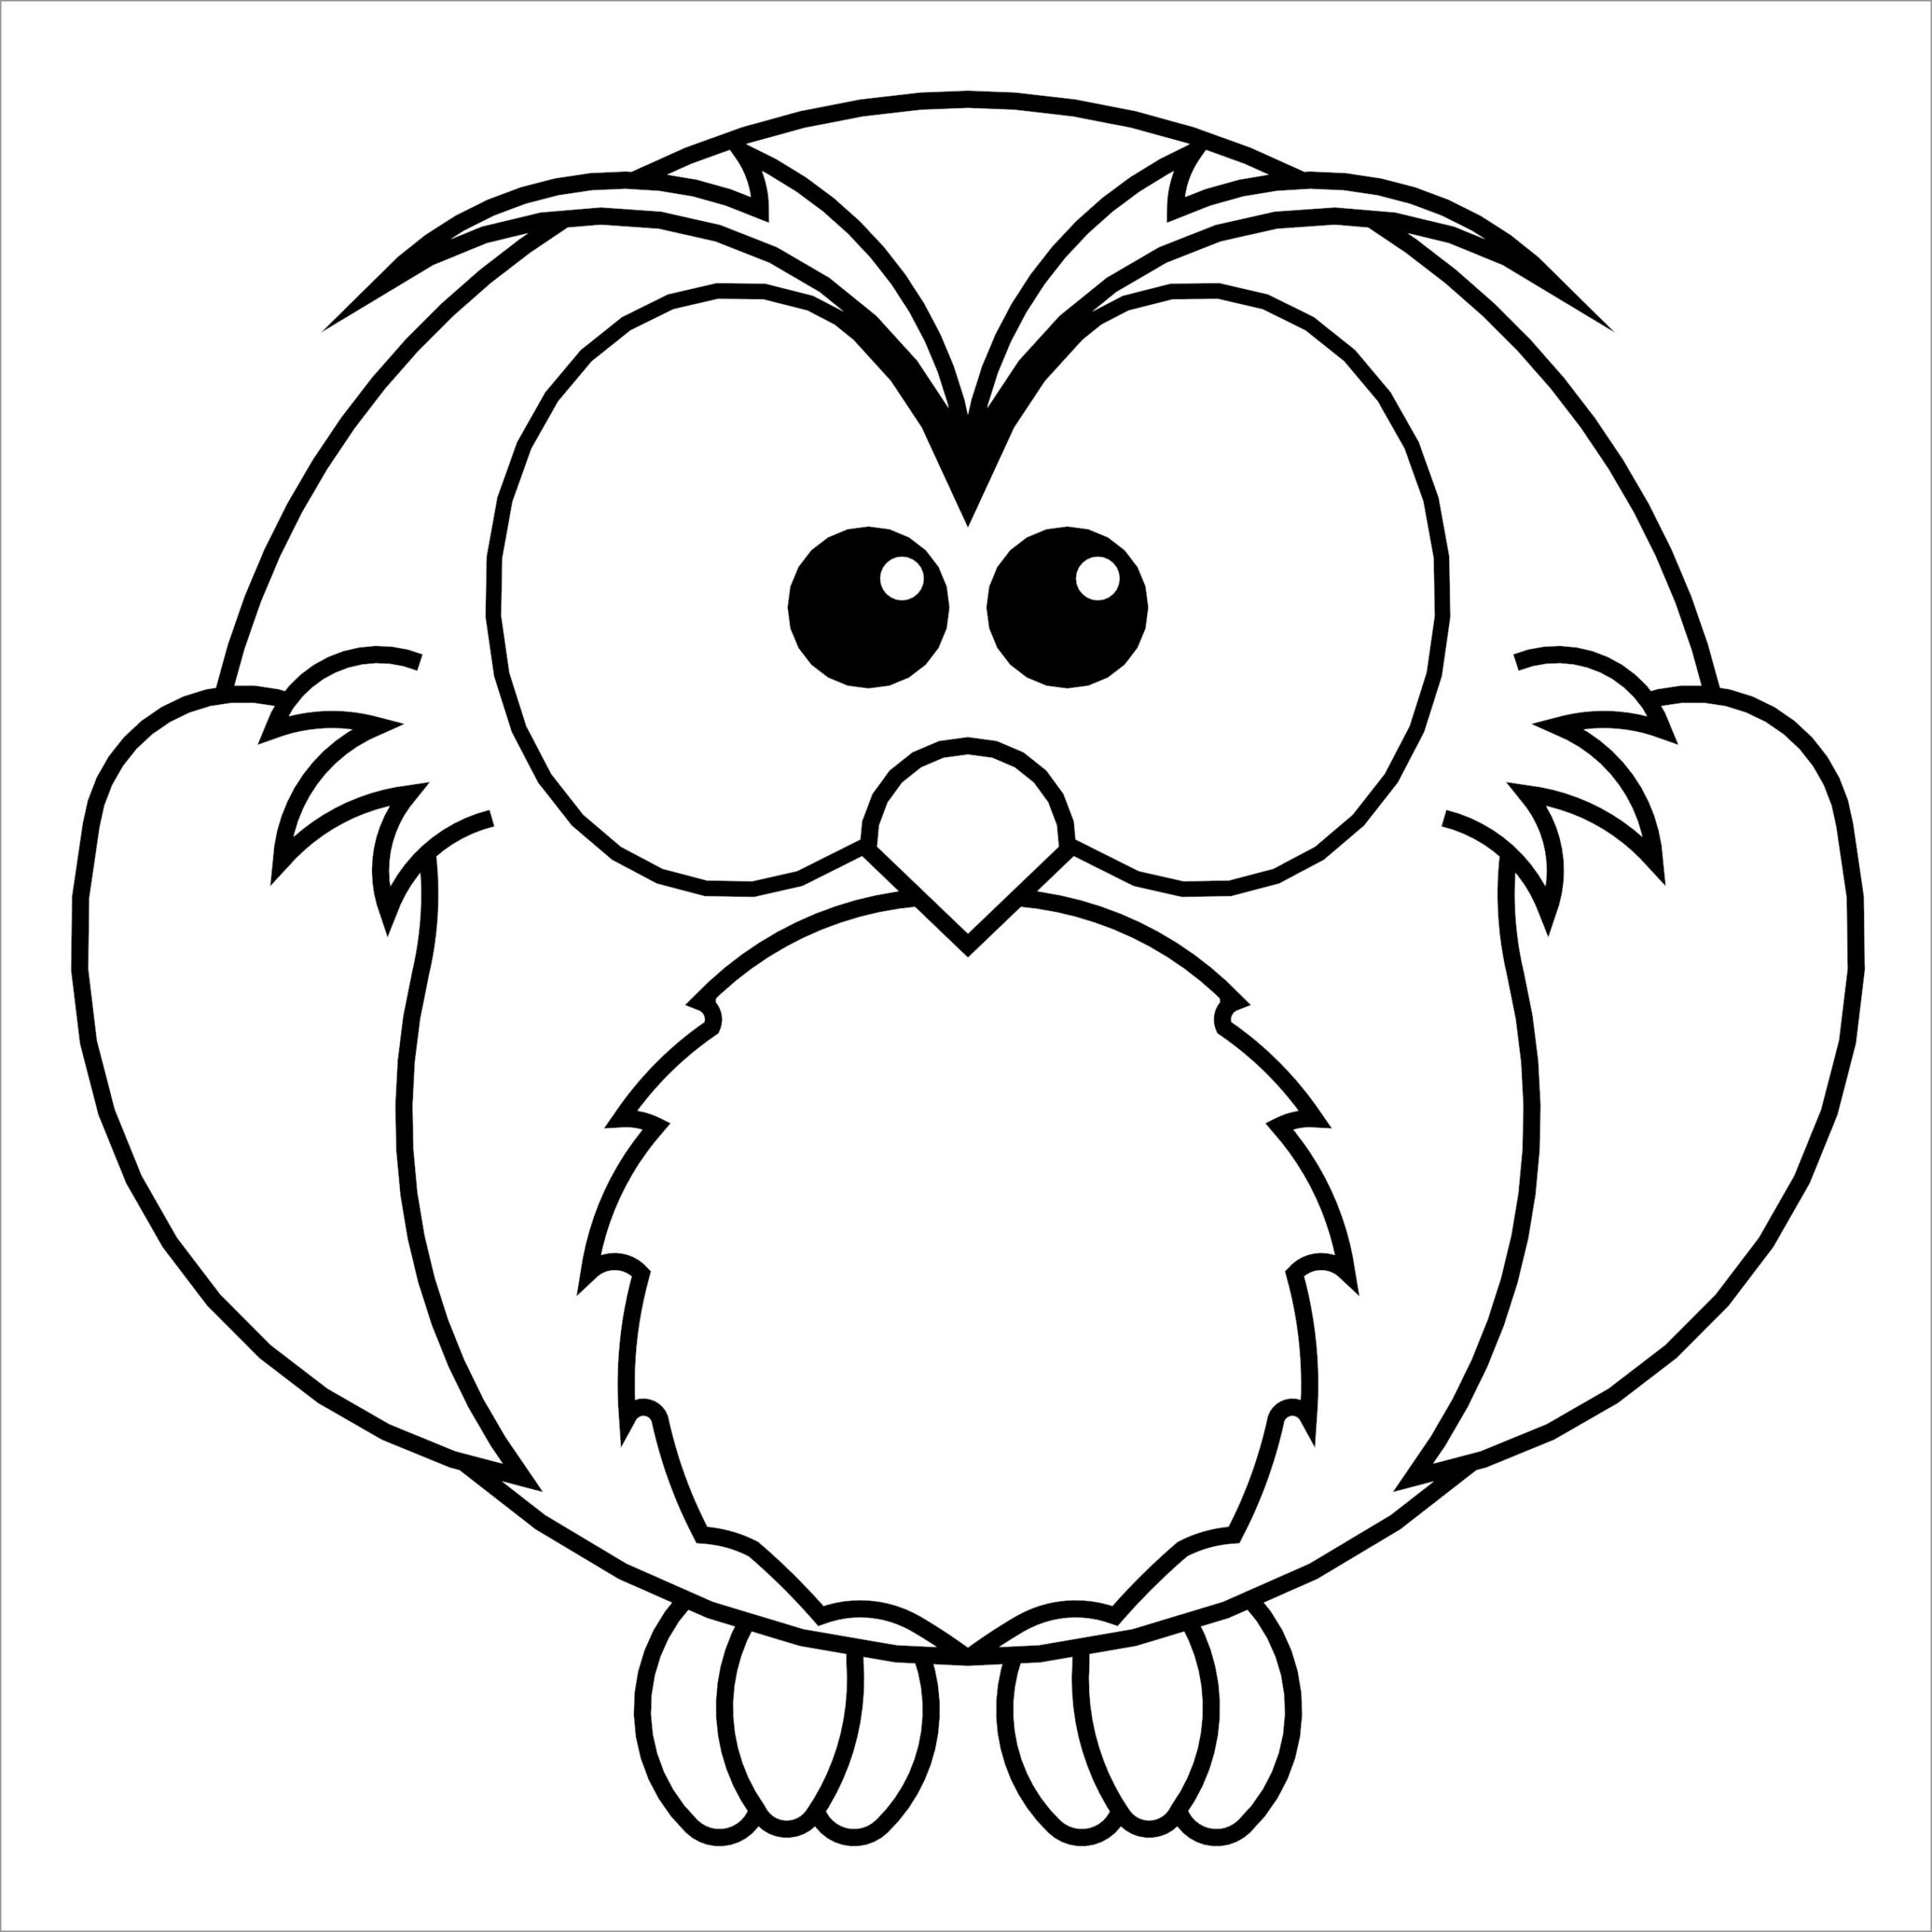 colouring owl night animals coloring pages food ideas colouring owl